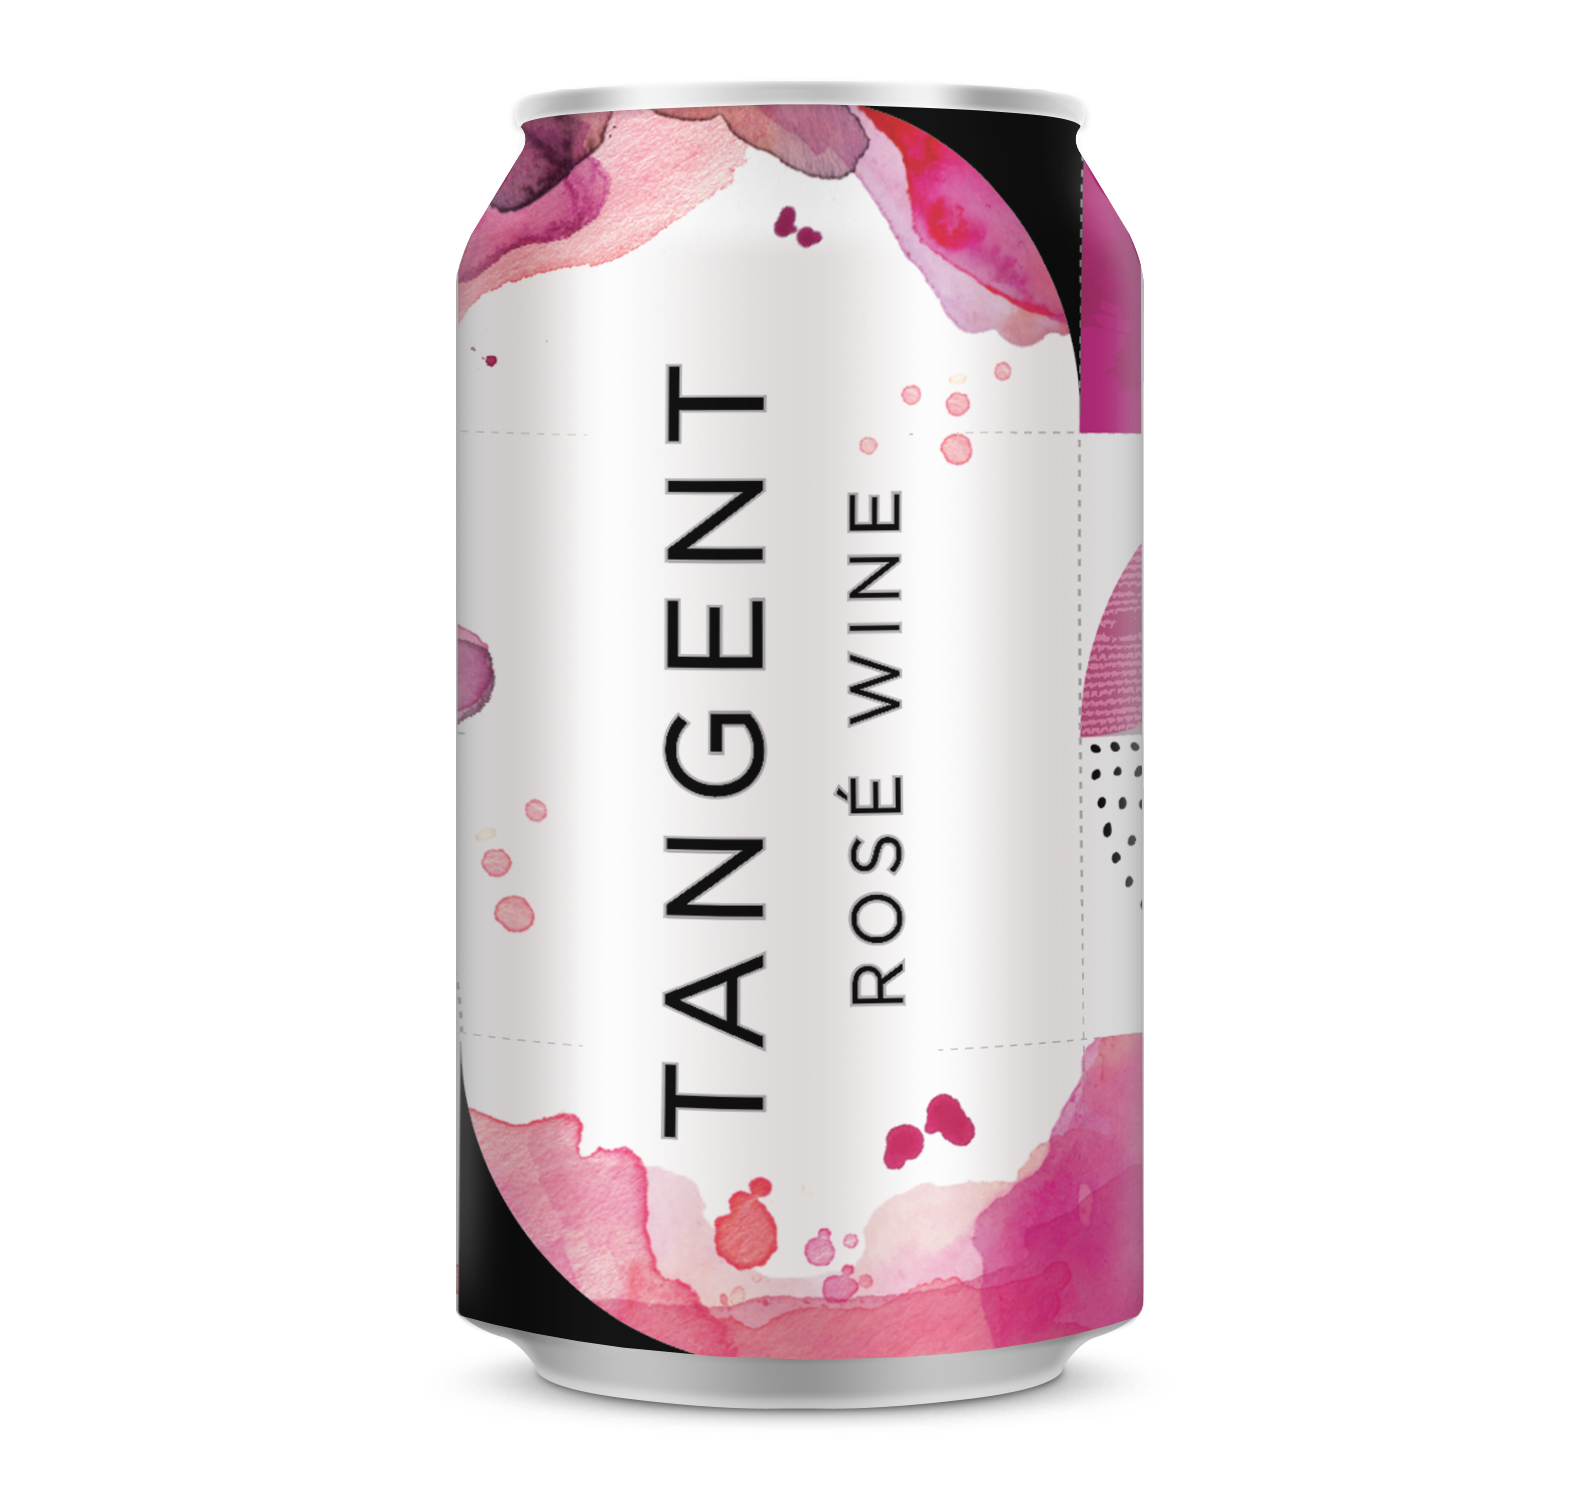 Tangent Rose Paragon Vineyard 375 ml Can